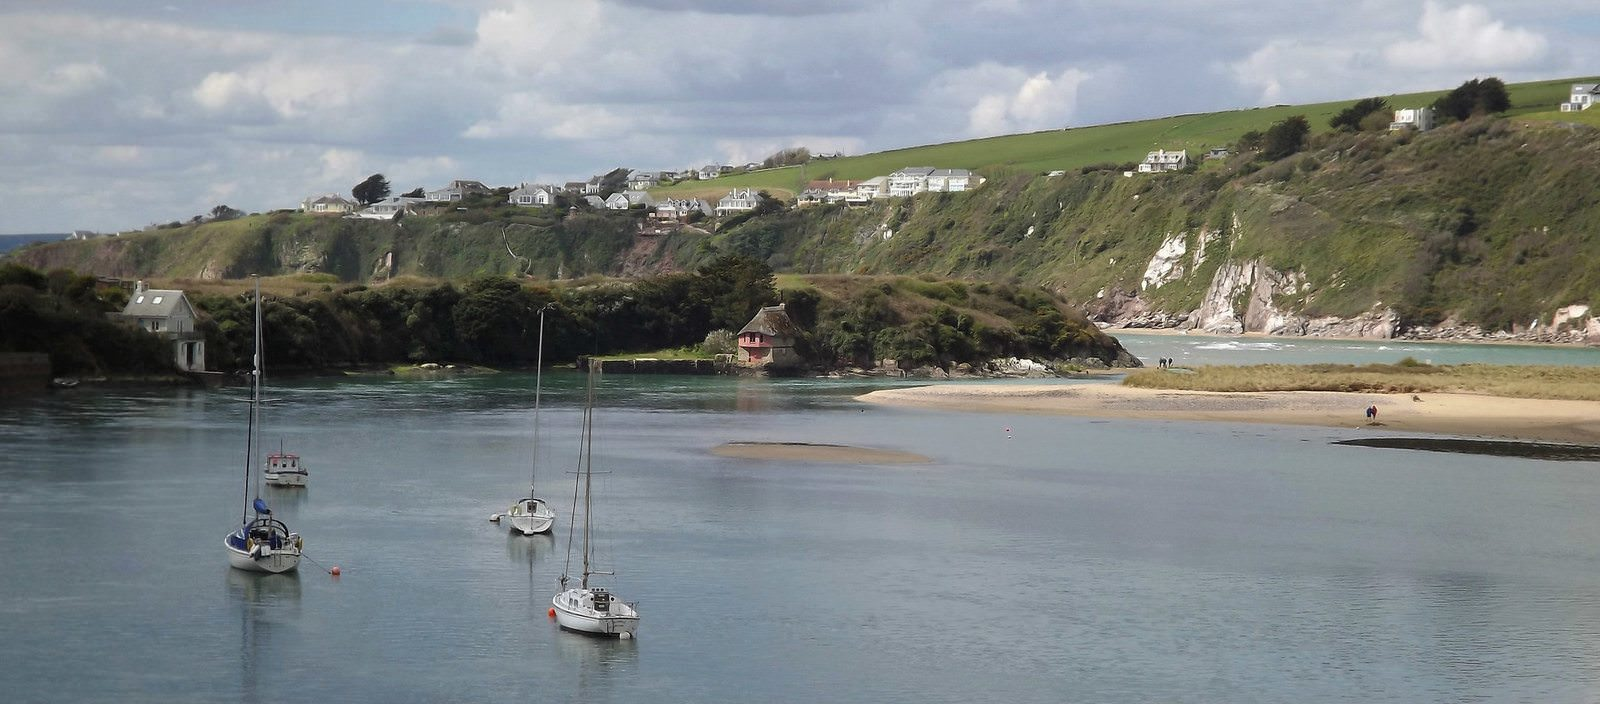 13 Best Things to do in Devon - Where to Go, Attractions to Visit